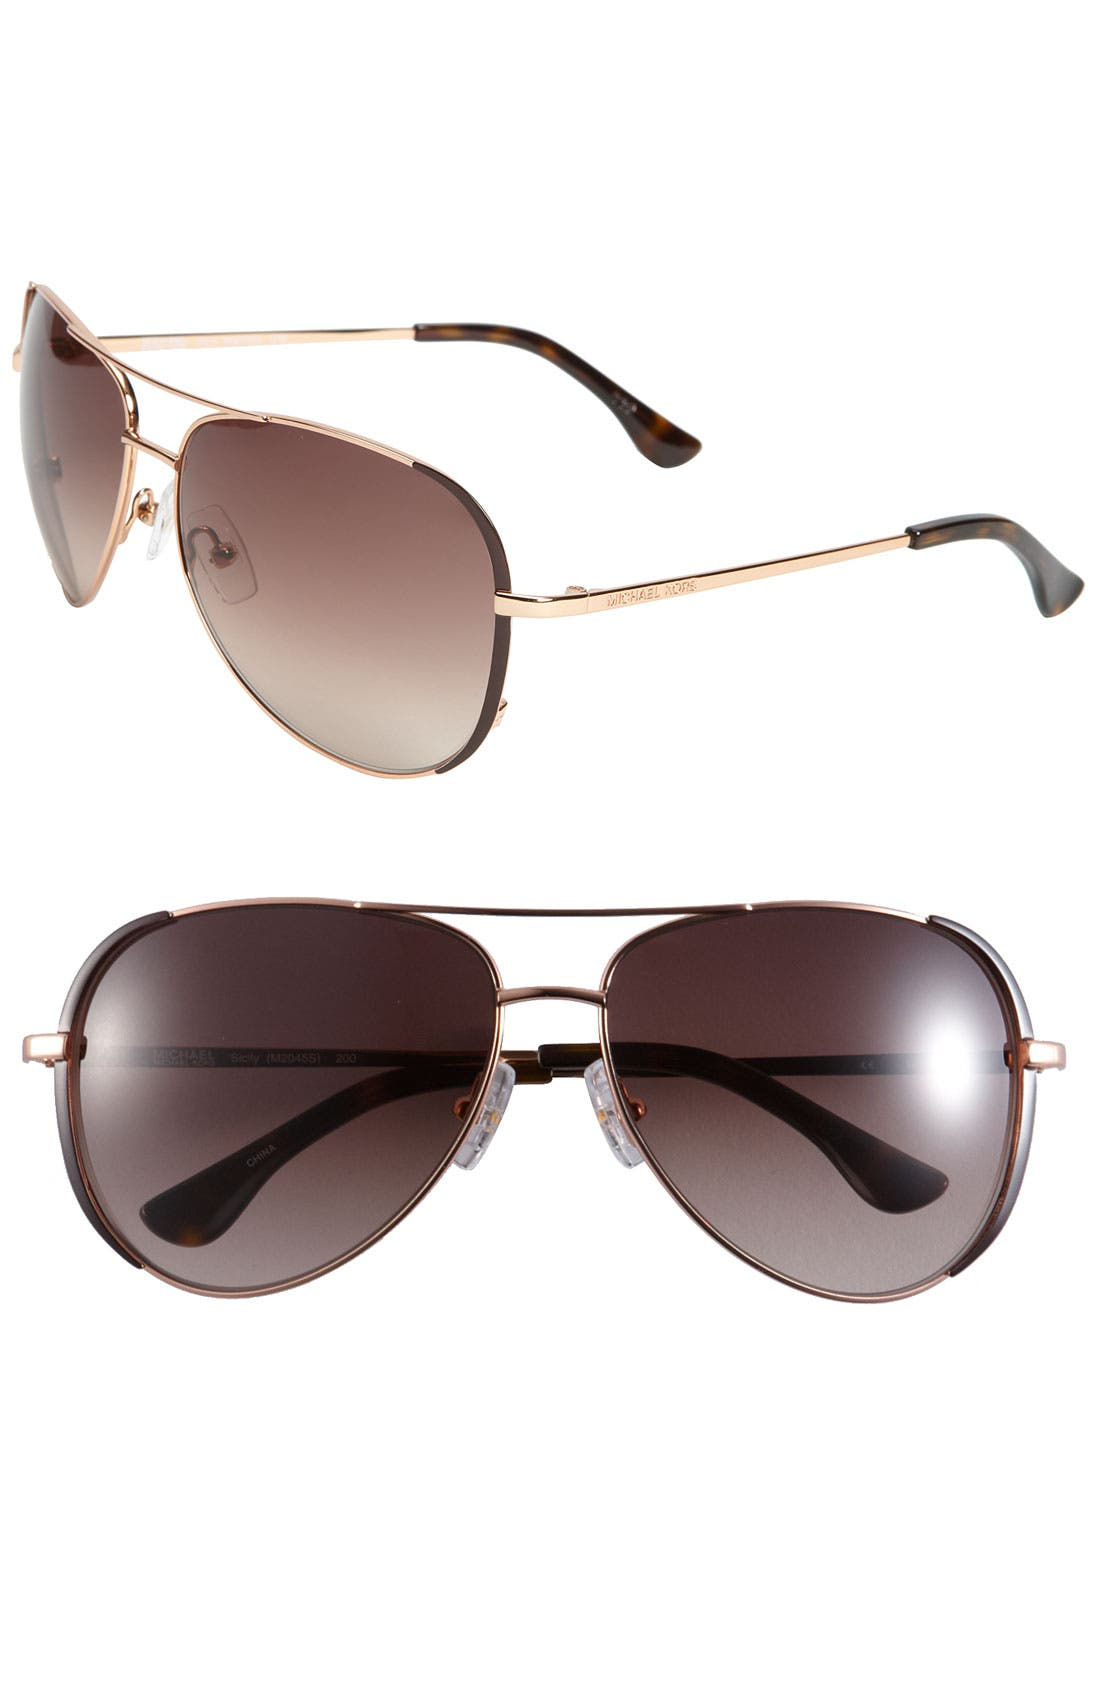 Main Image - MICHAEL Michael Kors 'Sicily' 59mm Metal Aviator Sunglasses